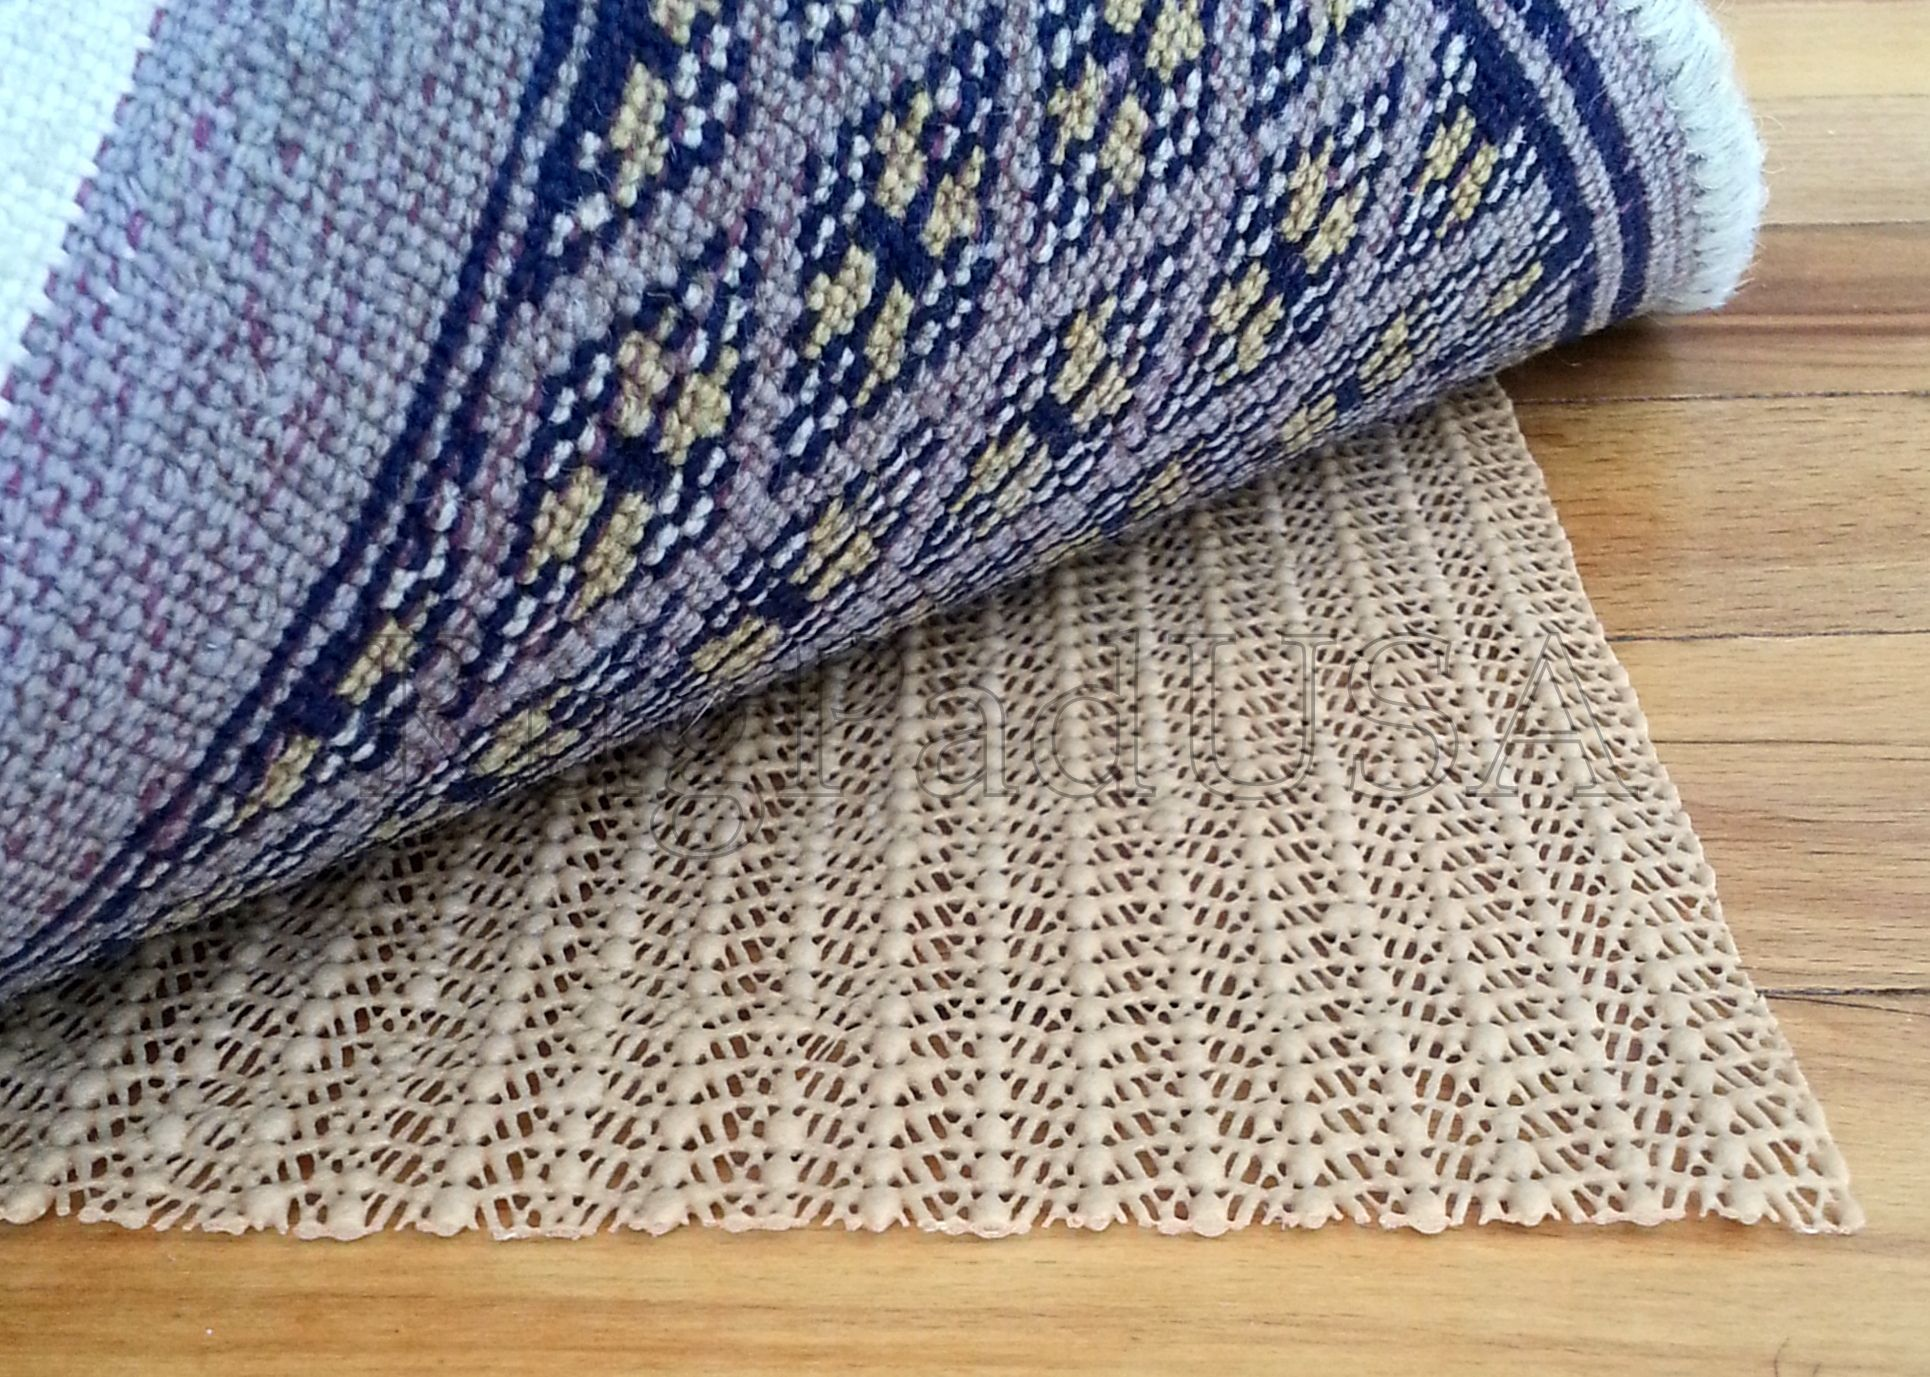 Sketch Of Feeling Warm And Comfortable With Best Rug Pads For - Vinyl rug pads for hardwood floors